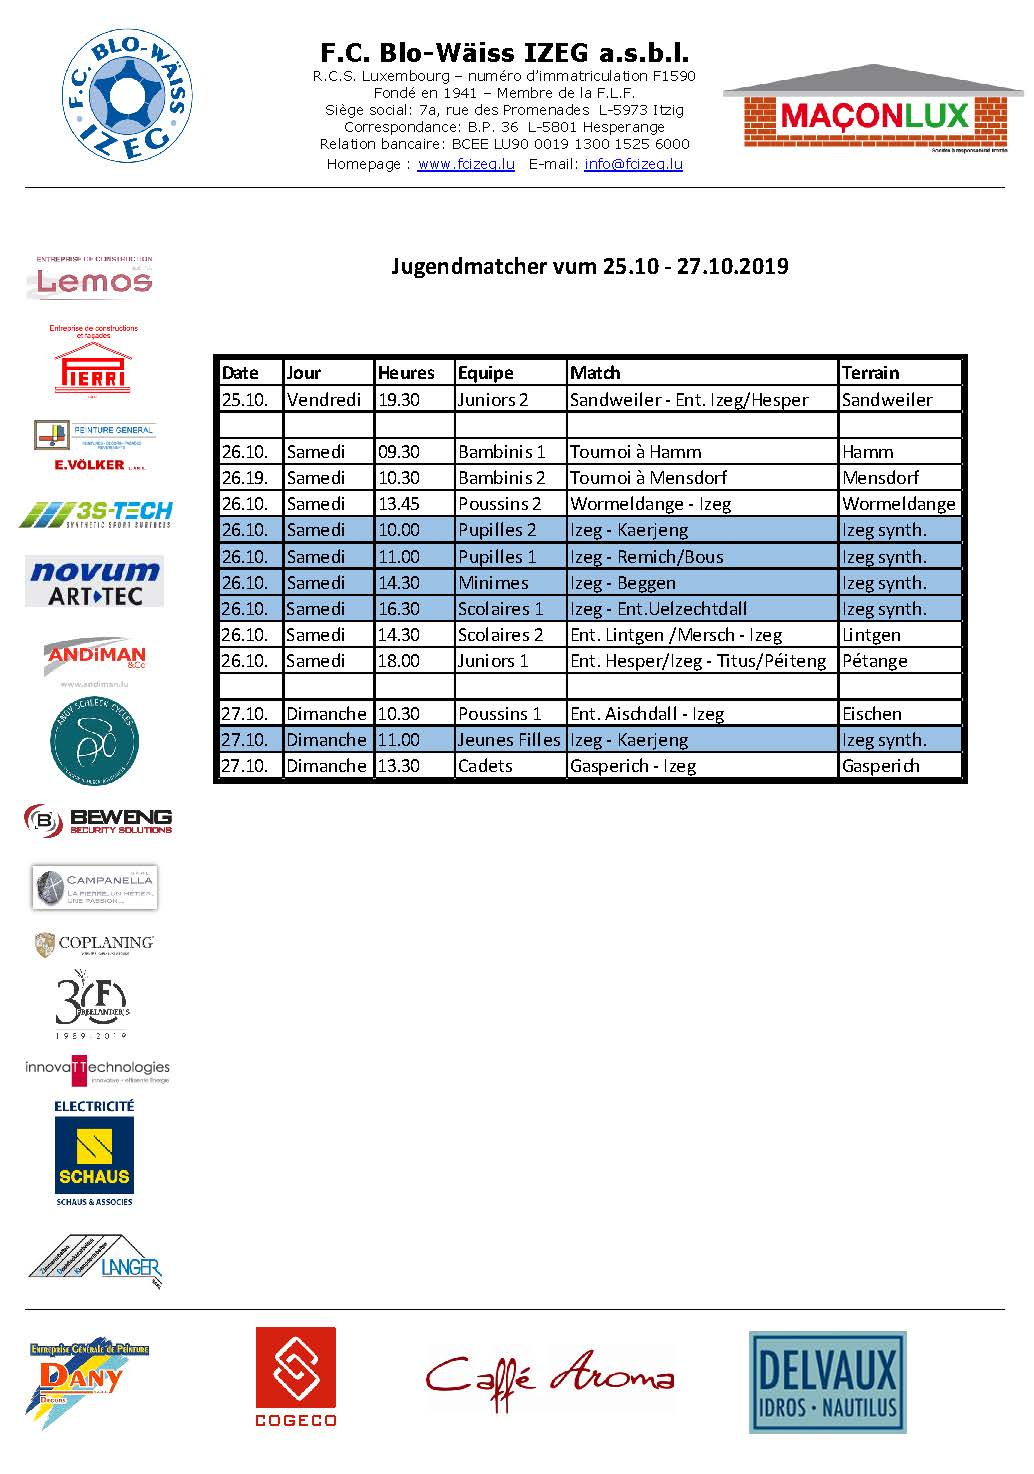 Jugendmatcher vum Weekend 25. bis 27. Oktober